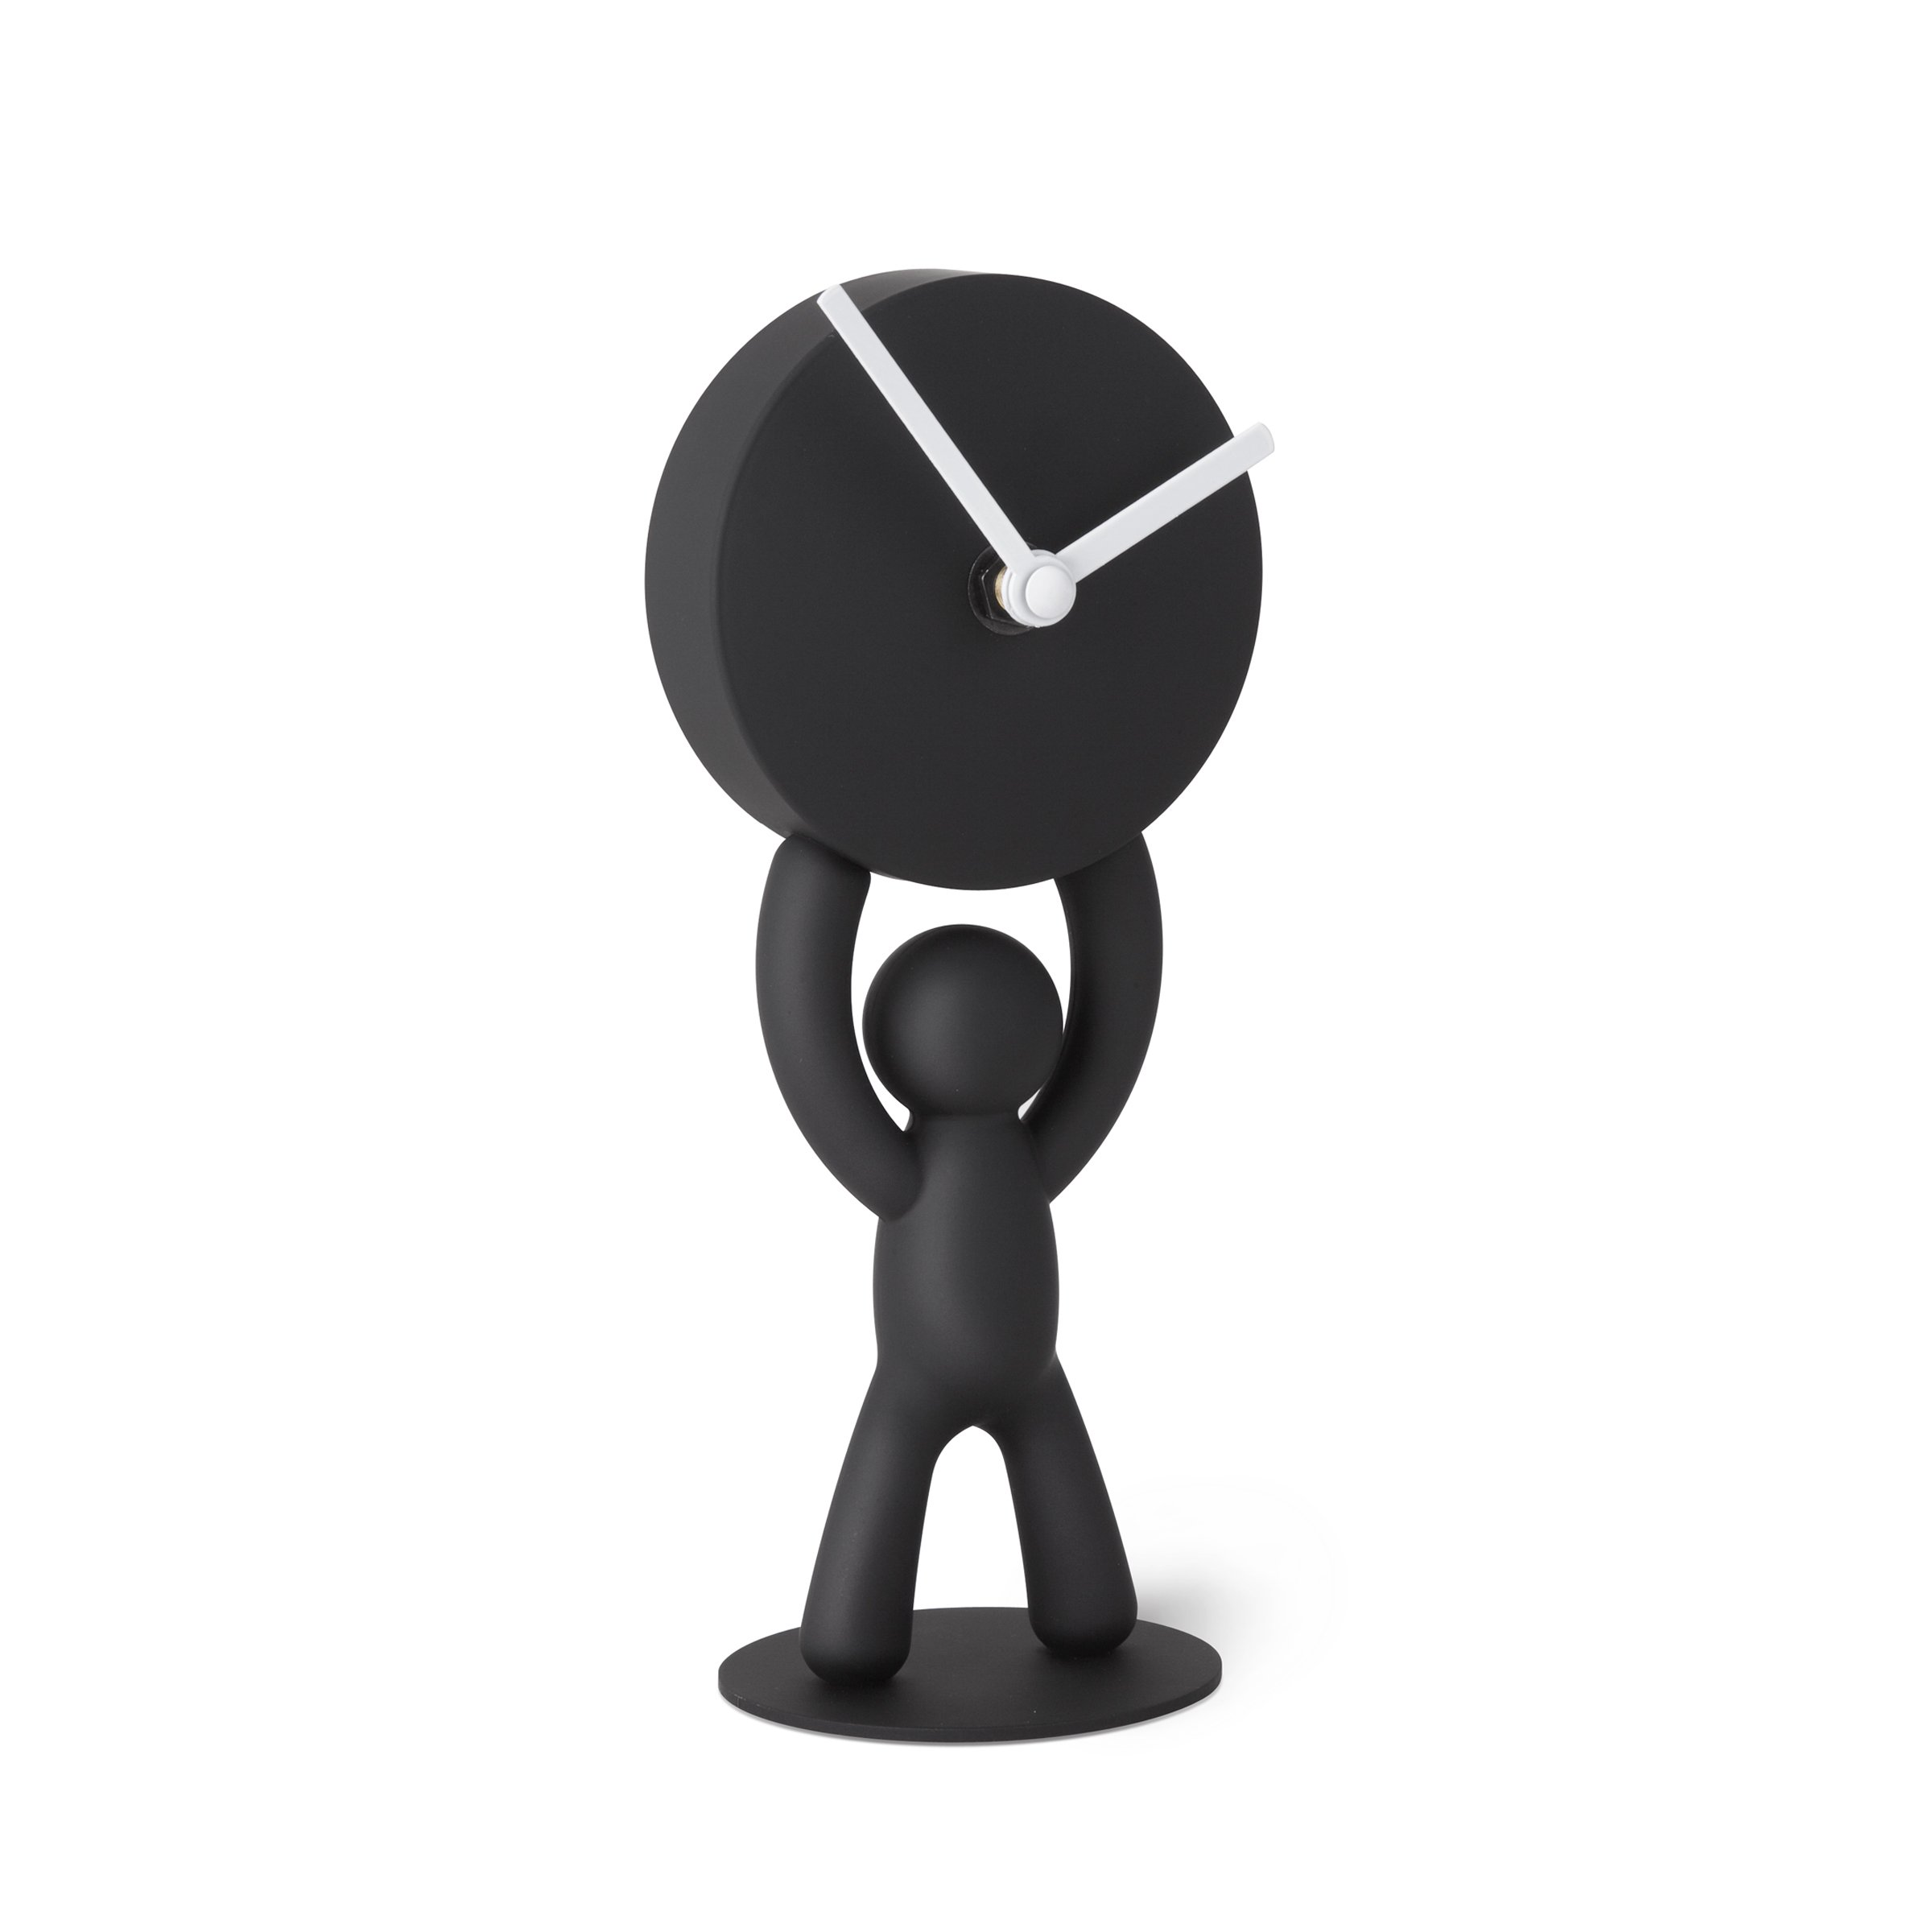 Umbra Buddy Desk Clock, Playful Clock for the Desktop, Soft Touch Finish, Black